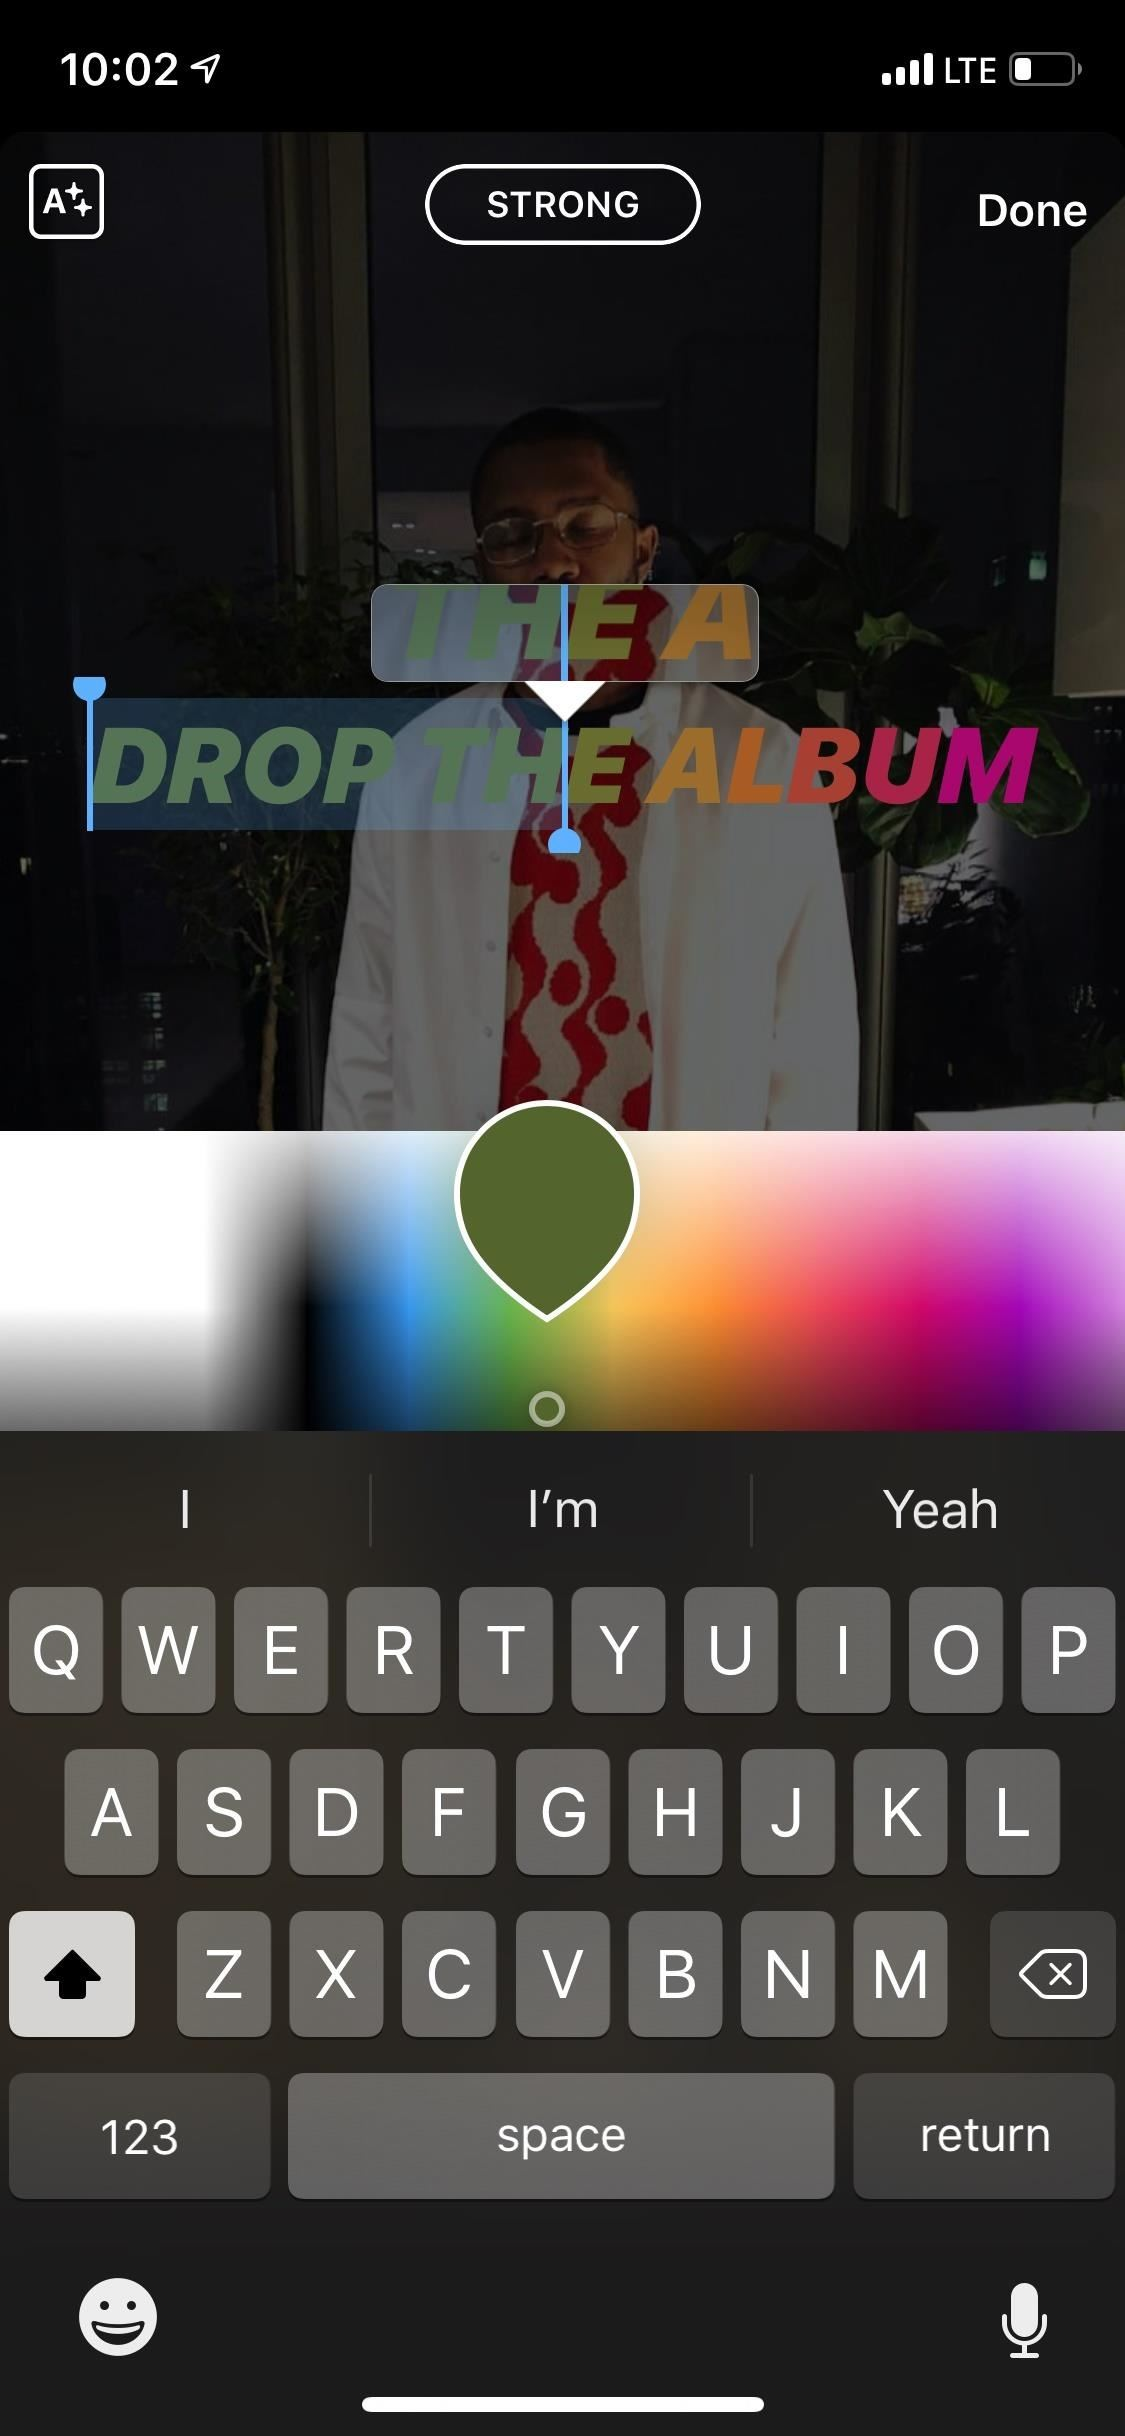 Use This Text Trick in Instagram Stories to Change Each Character's Color in Seconds